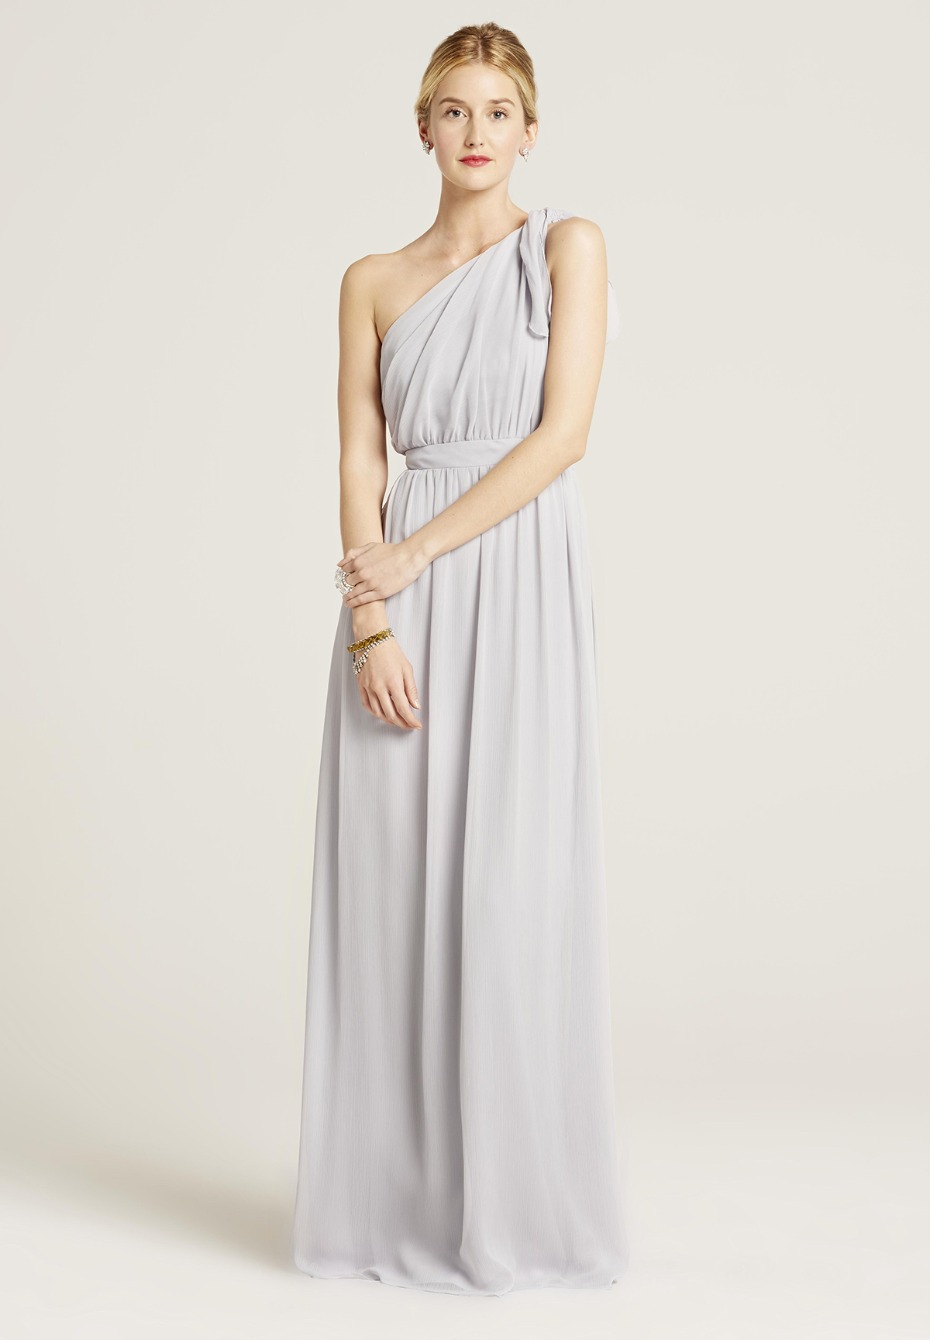 steel grey bridesmaid dress from Union Station